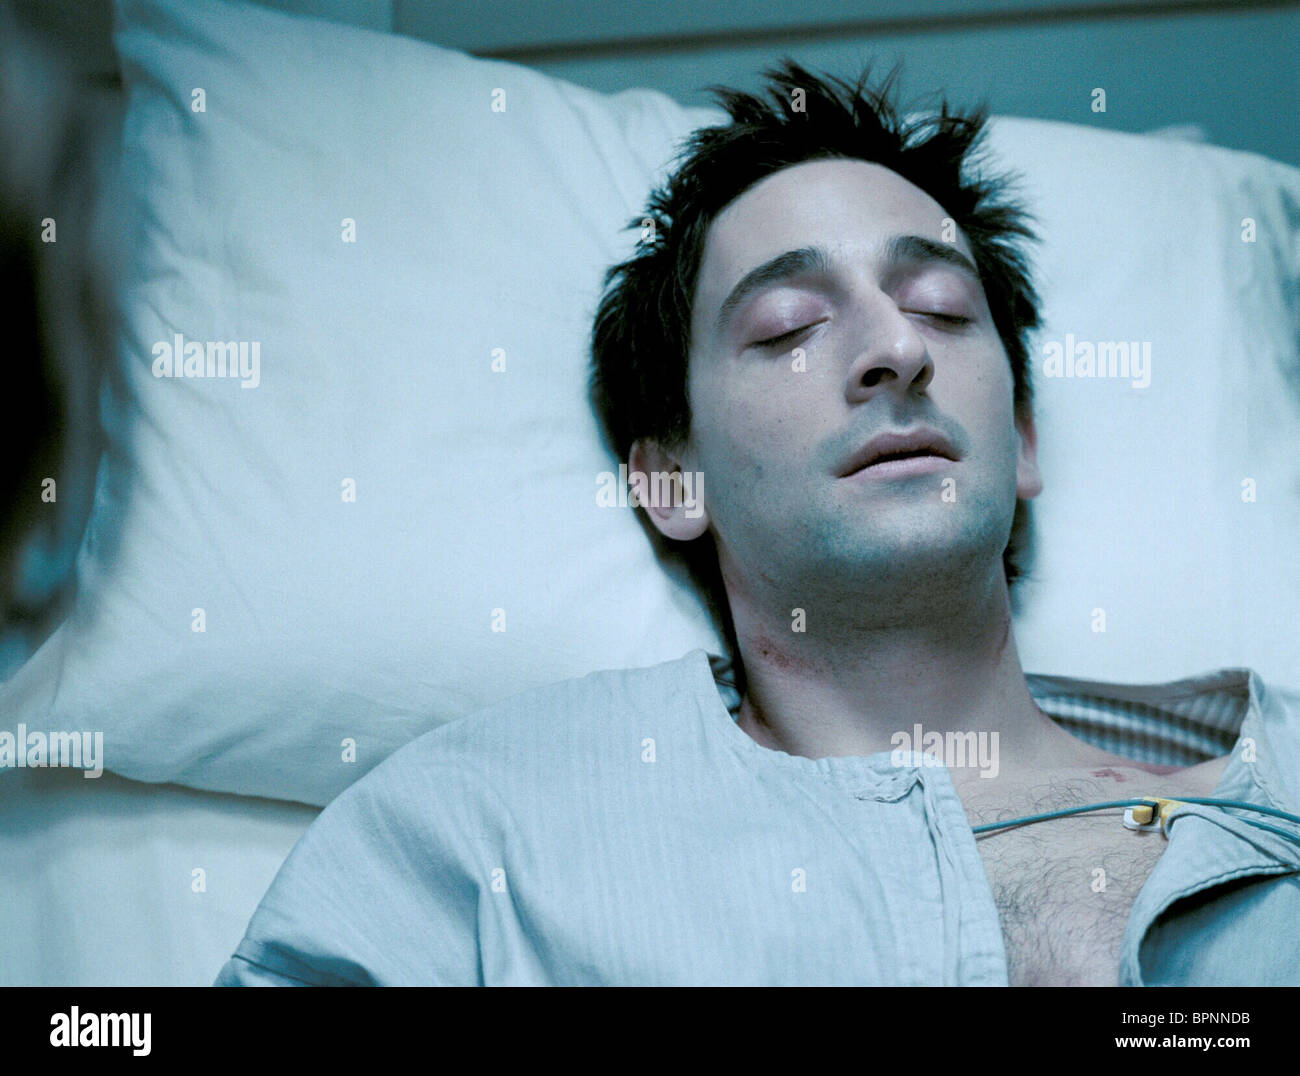 ADRIEN BRODY THE JACKET (2005) - Stock Image